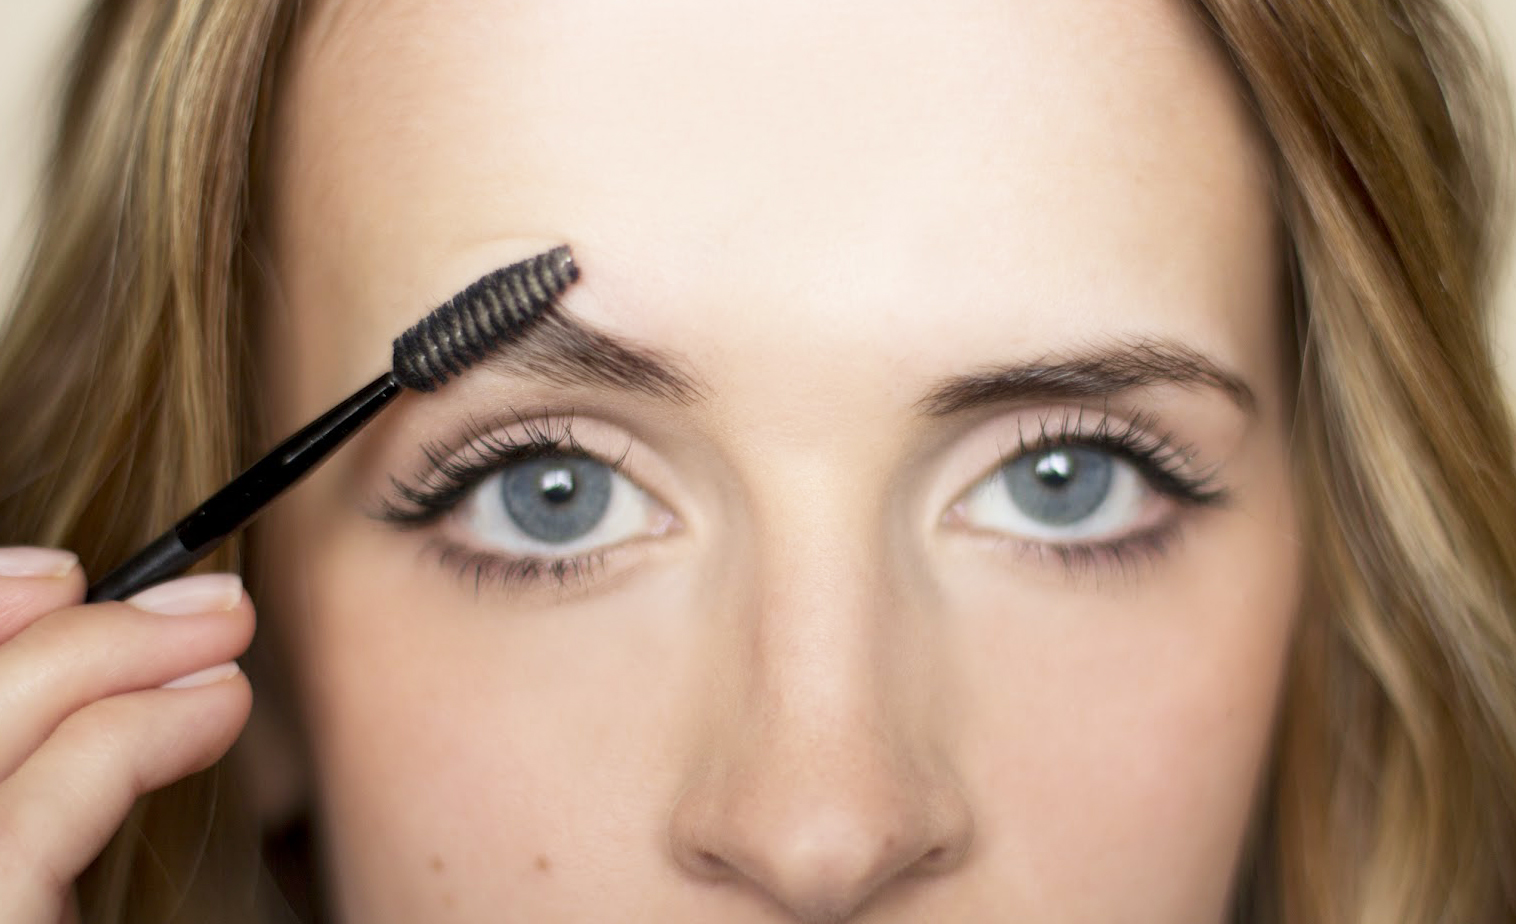 Use the Brow Brush